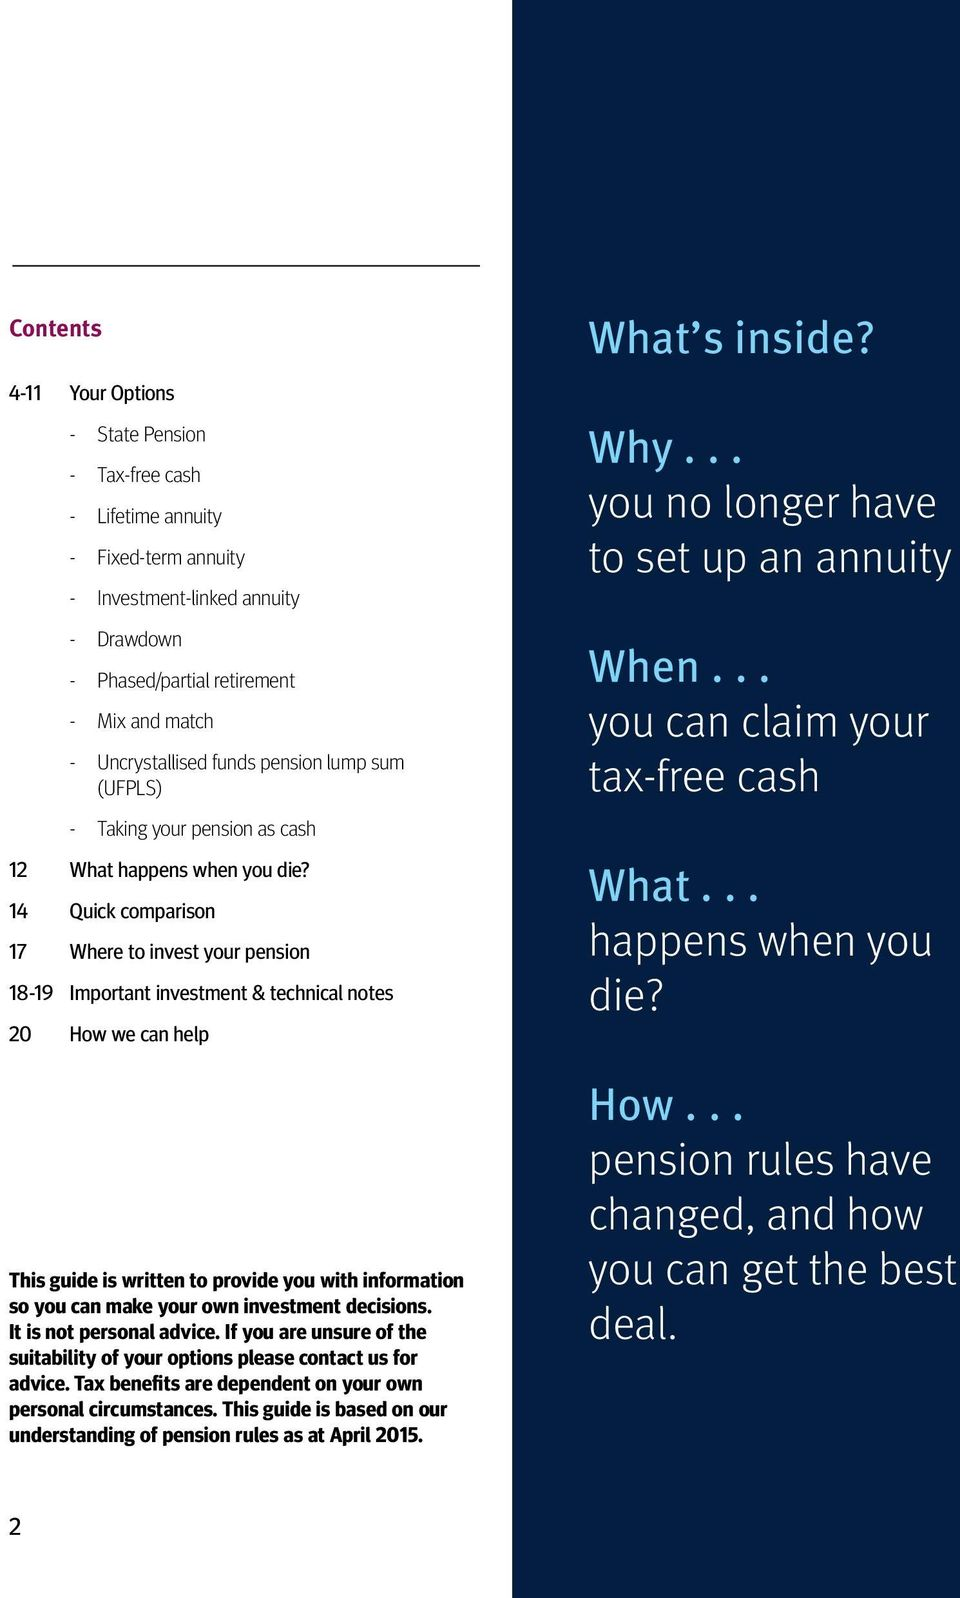 14 Quick comparison 17 Where to invest your pension 18-19 Important investment & technical notes 20 How we can help This guide is written to provide you with information so you can make your own